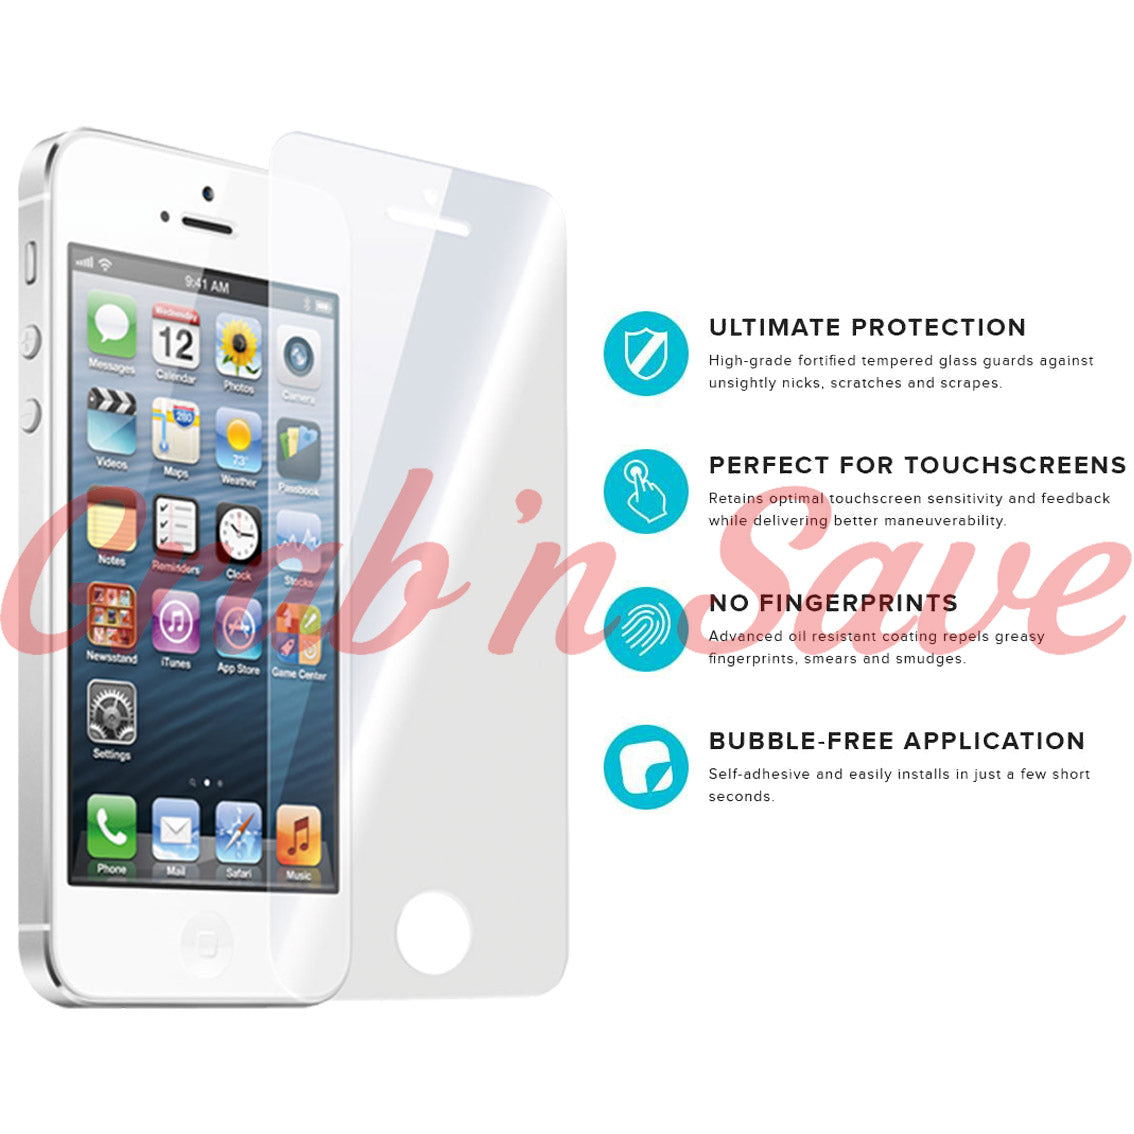 iPhone 5 Screen Protector, Glass Screen Protector, Tempered Glass Screen Protector